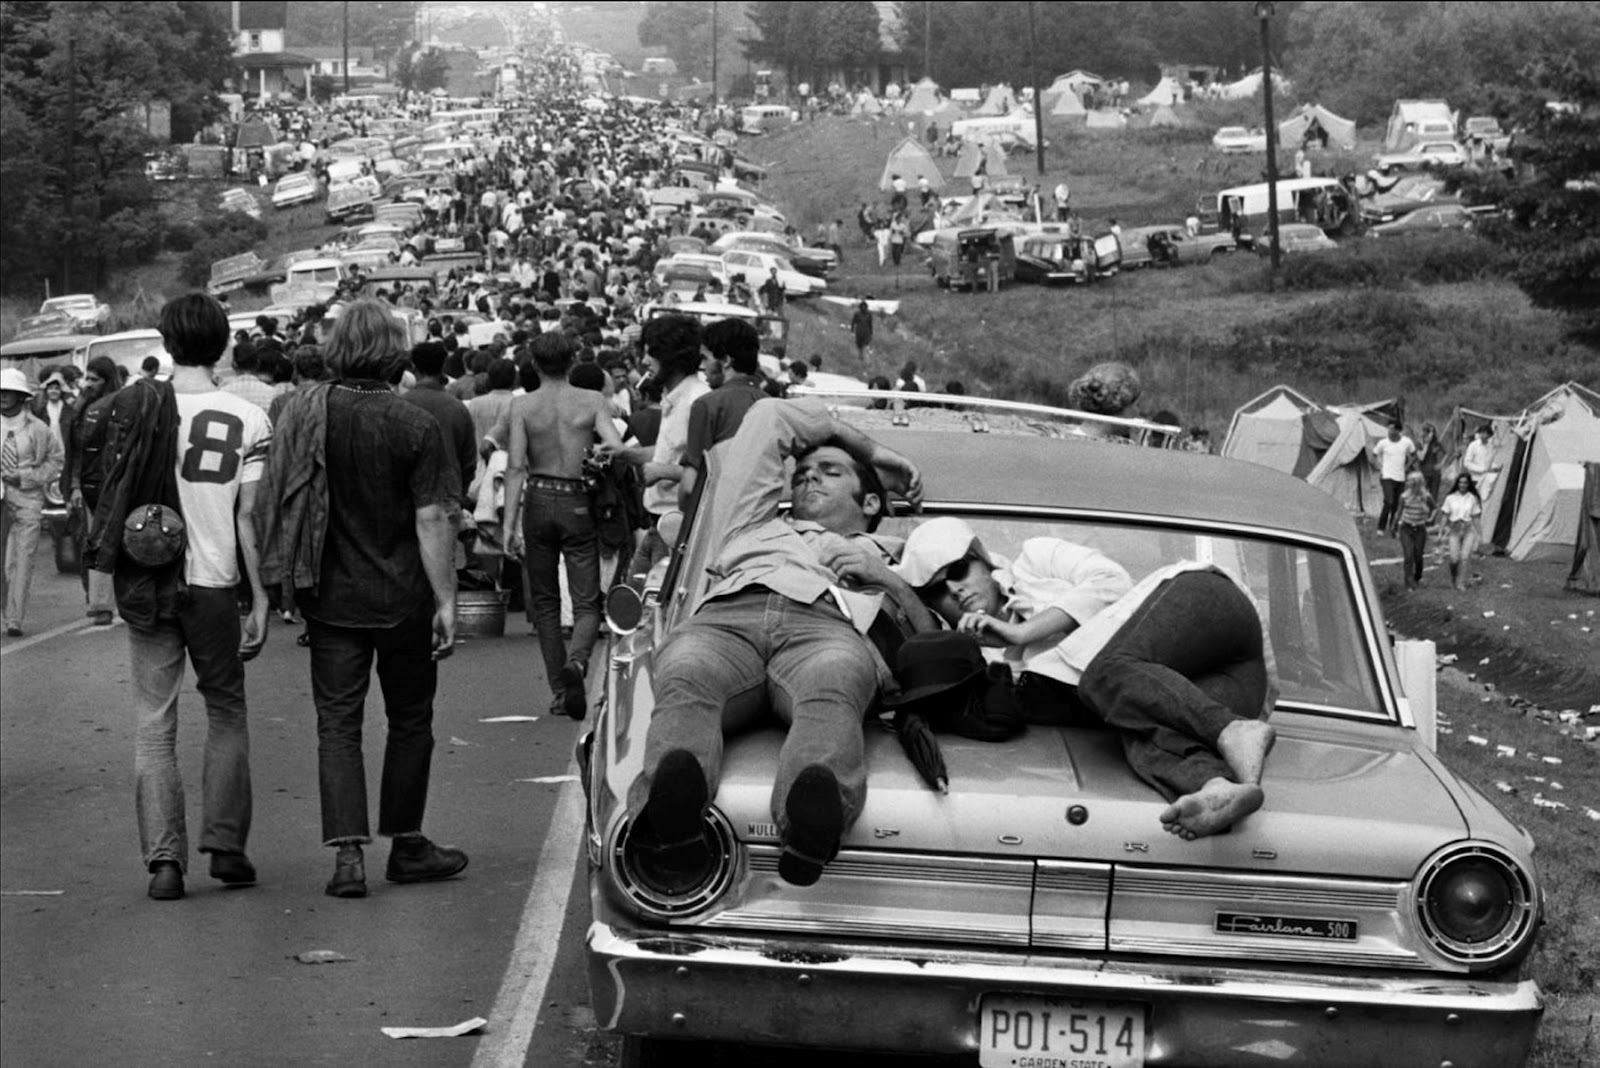 Woodstock Festival Aftermath , New York, 1969